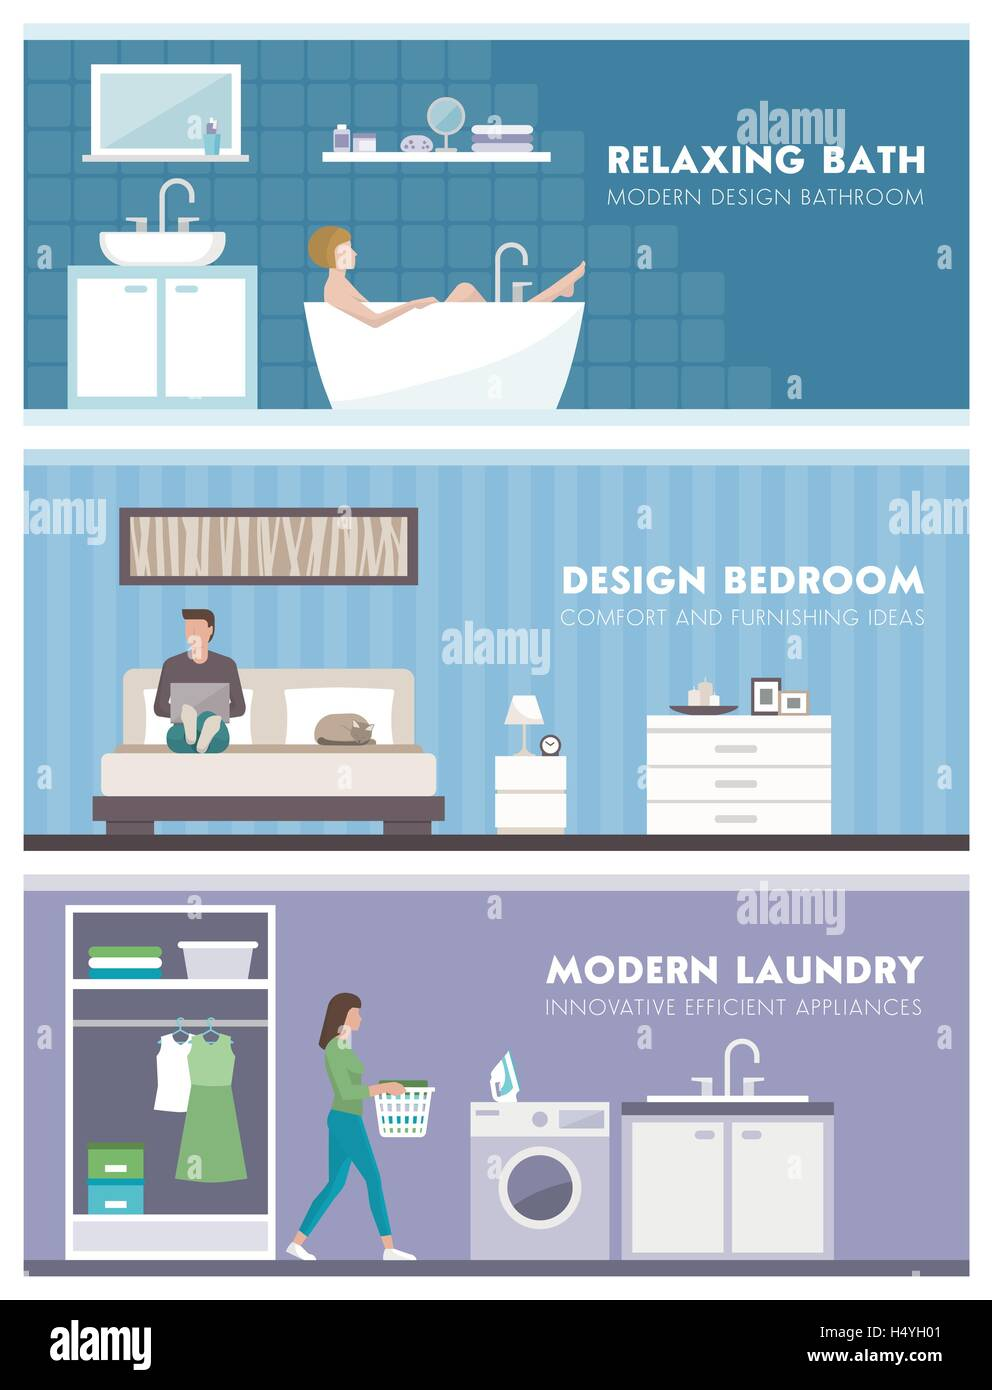 Domestic lifestyle and room interiors banners set with people: bathroom, bedroom and laundry room - Stock Image